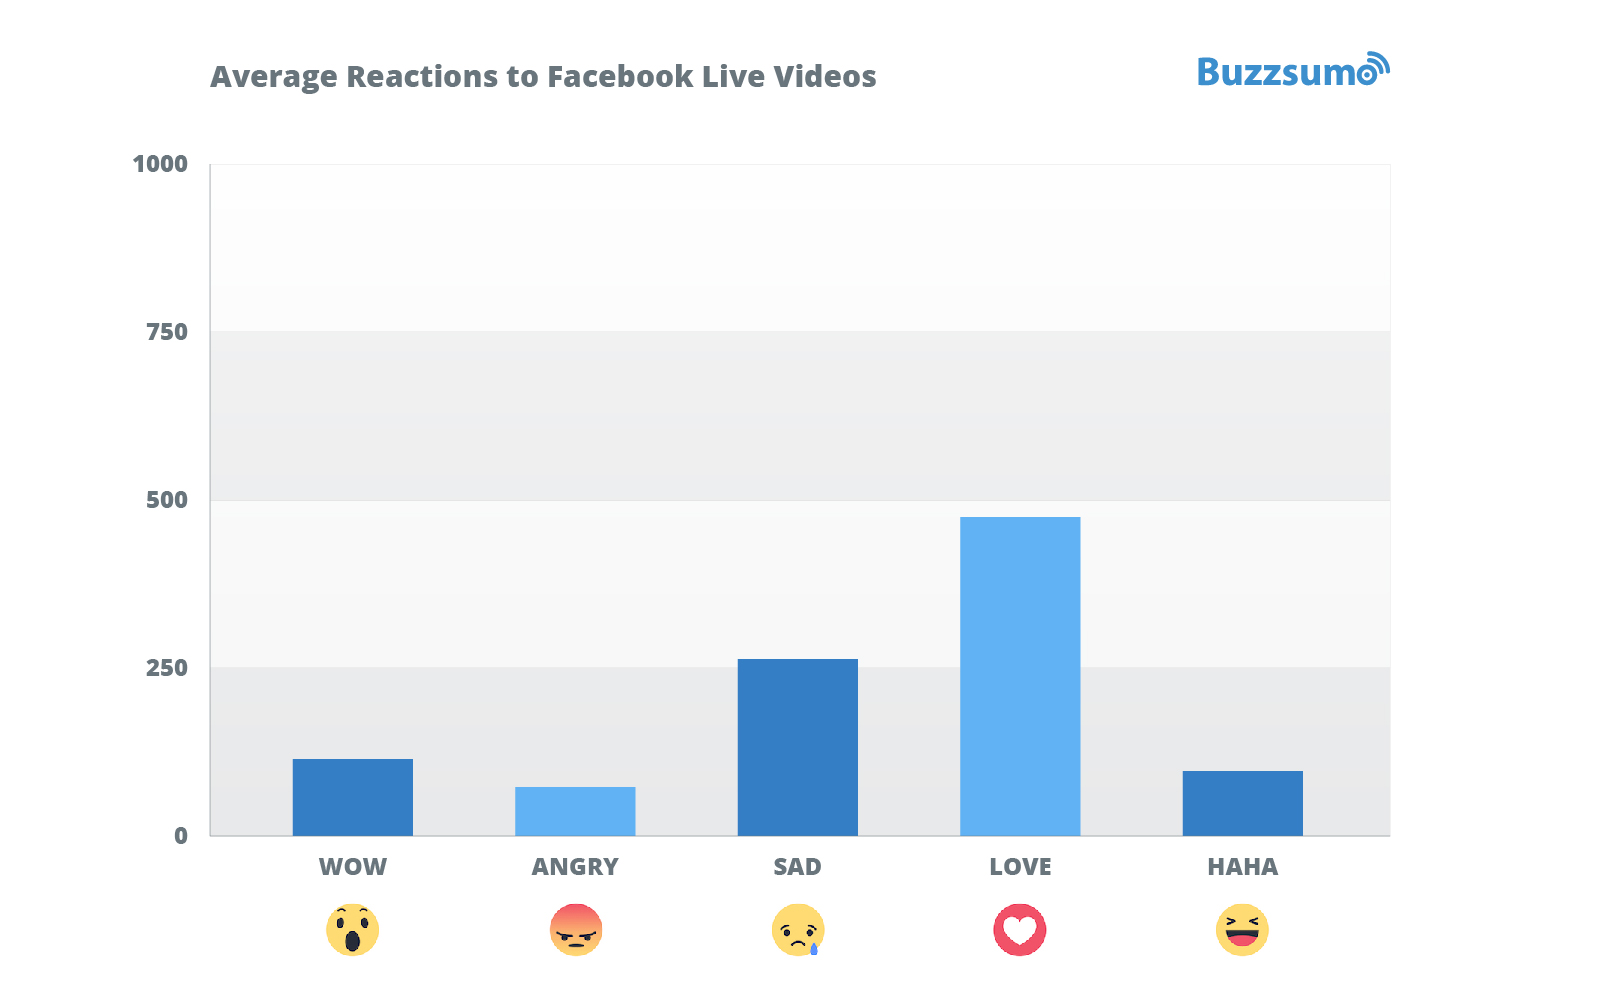 Top reactions to Facebook live videos